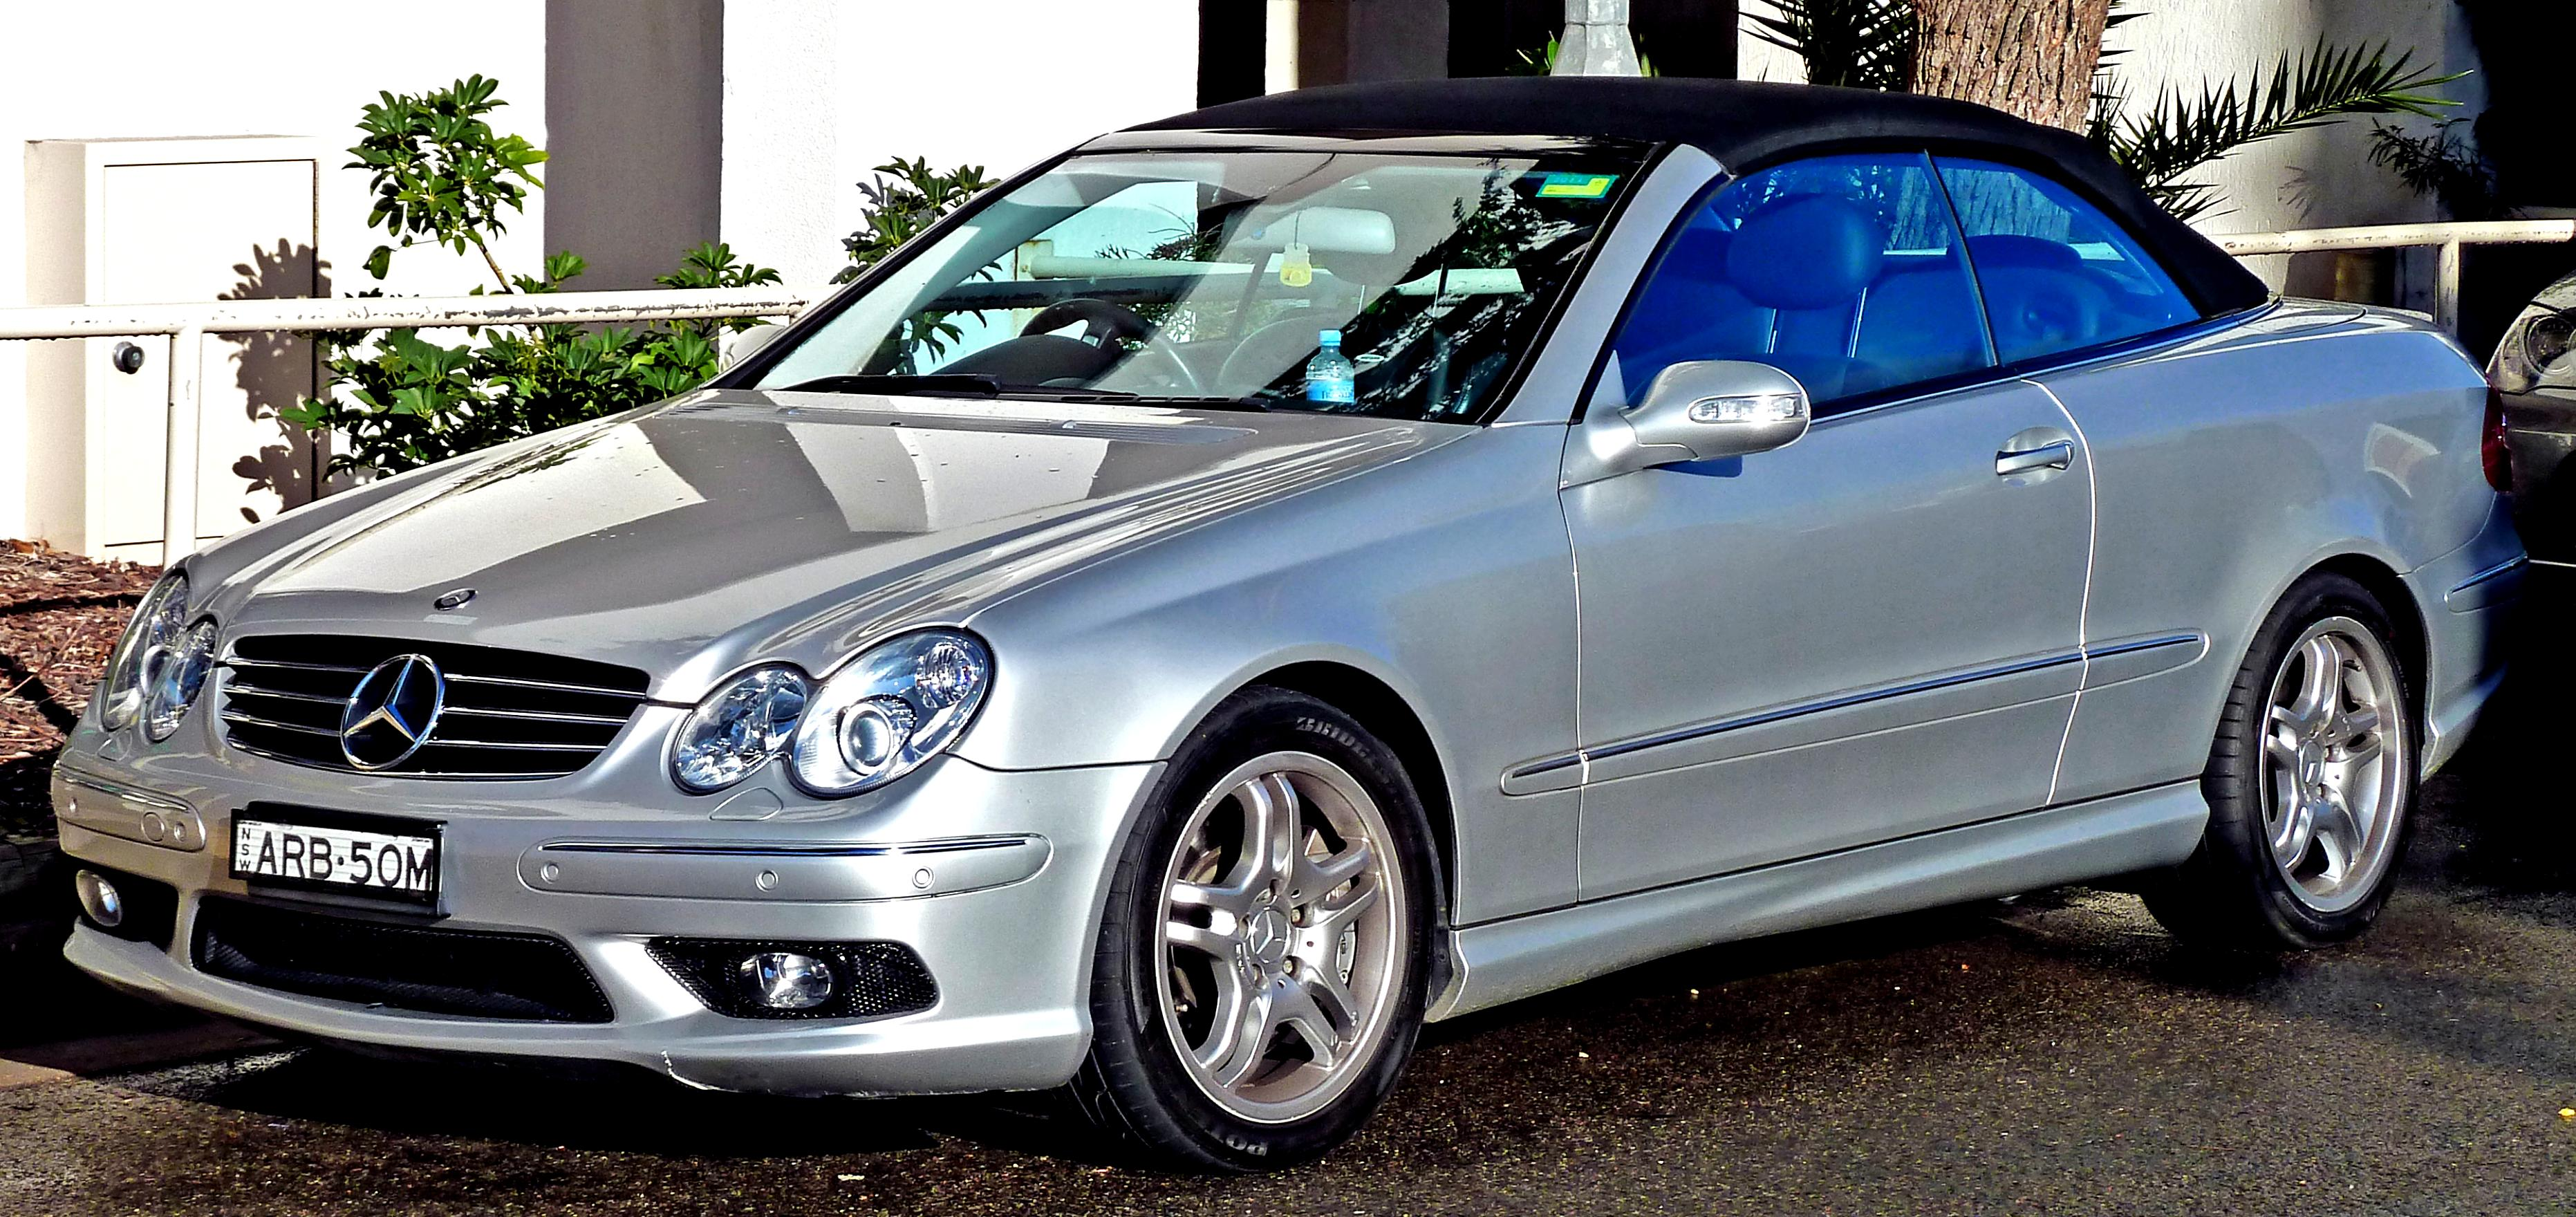 mercedes benz clk cabrio a209 2003 on. Black Bedroom Furniture Sets. Home Design Ideas